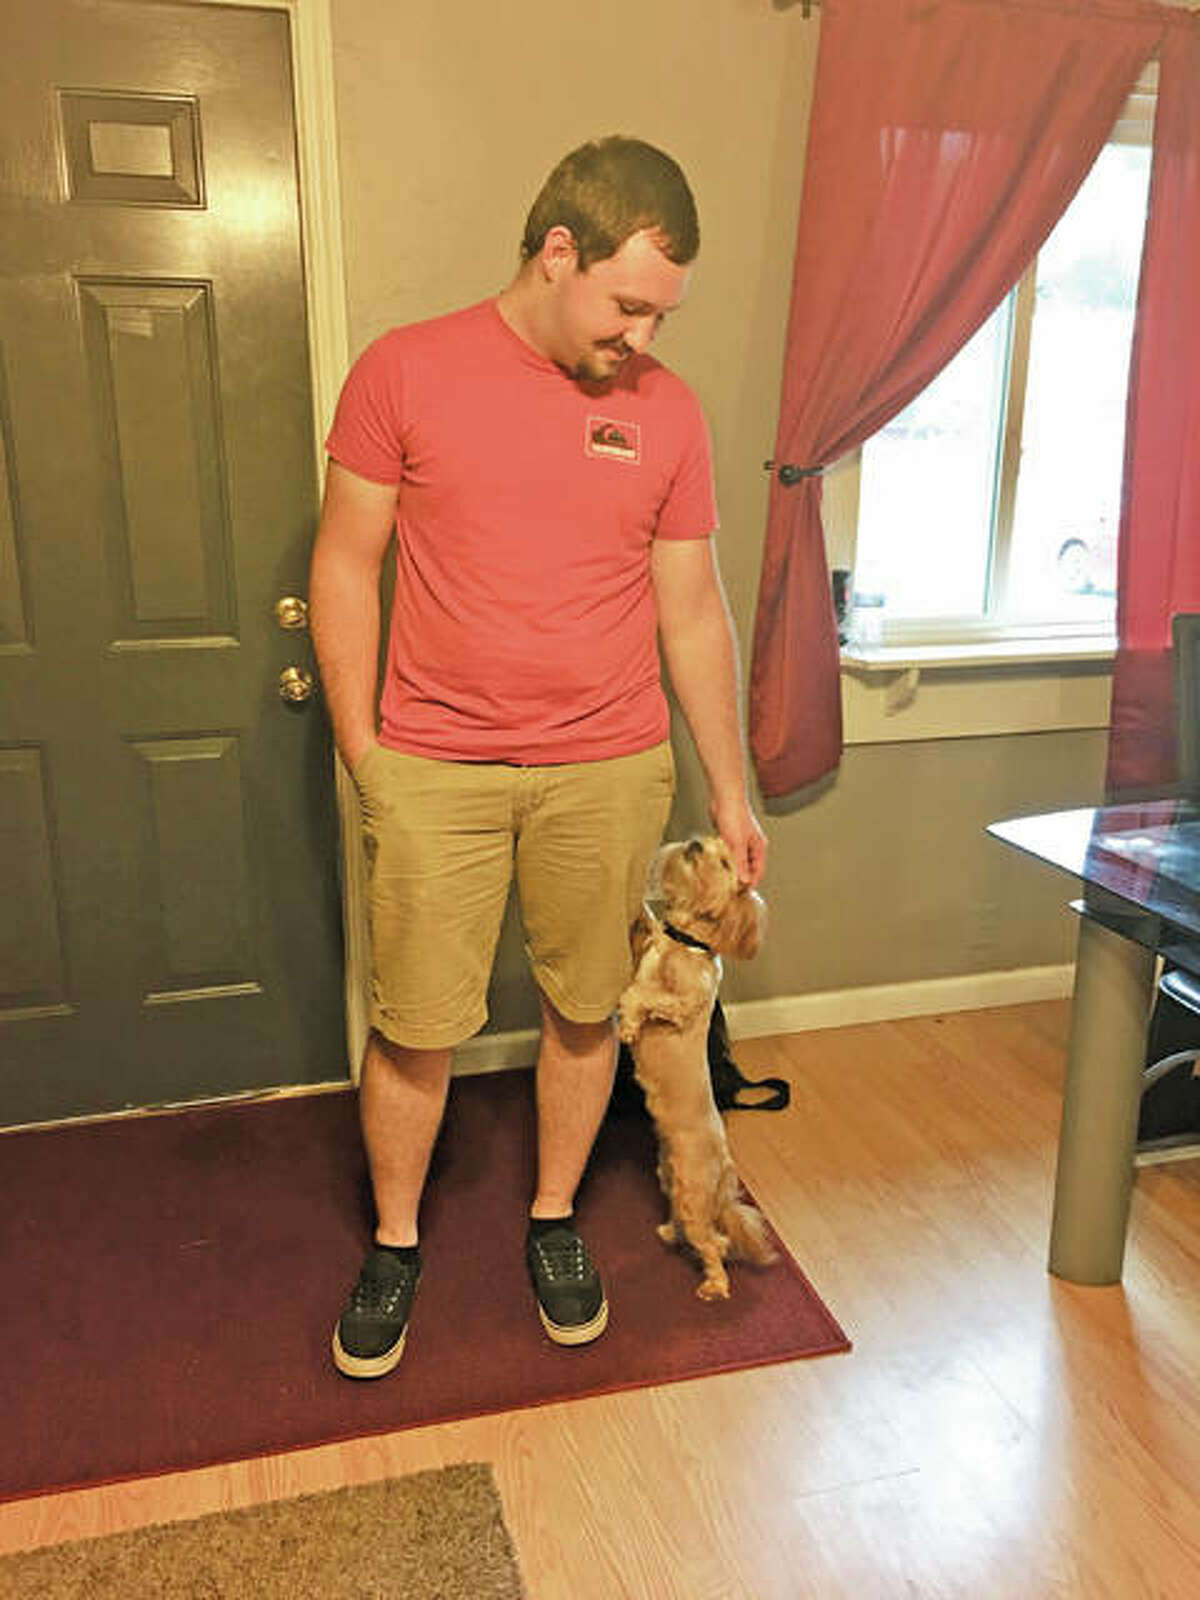 Blake Cruse, 21, stands with his girlfriend Nelly Porter's dog, Barracuda. Originally from Brighton, Cruse closed on a house on Lincoln Avenue in Jerseyville last year - a move he sees as a good investment. He also looked at homes in East Alton, Brighton and Delhi.